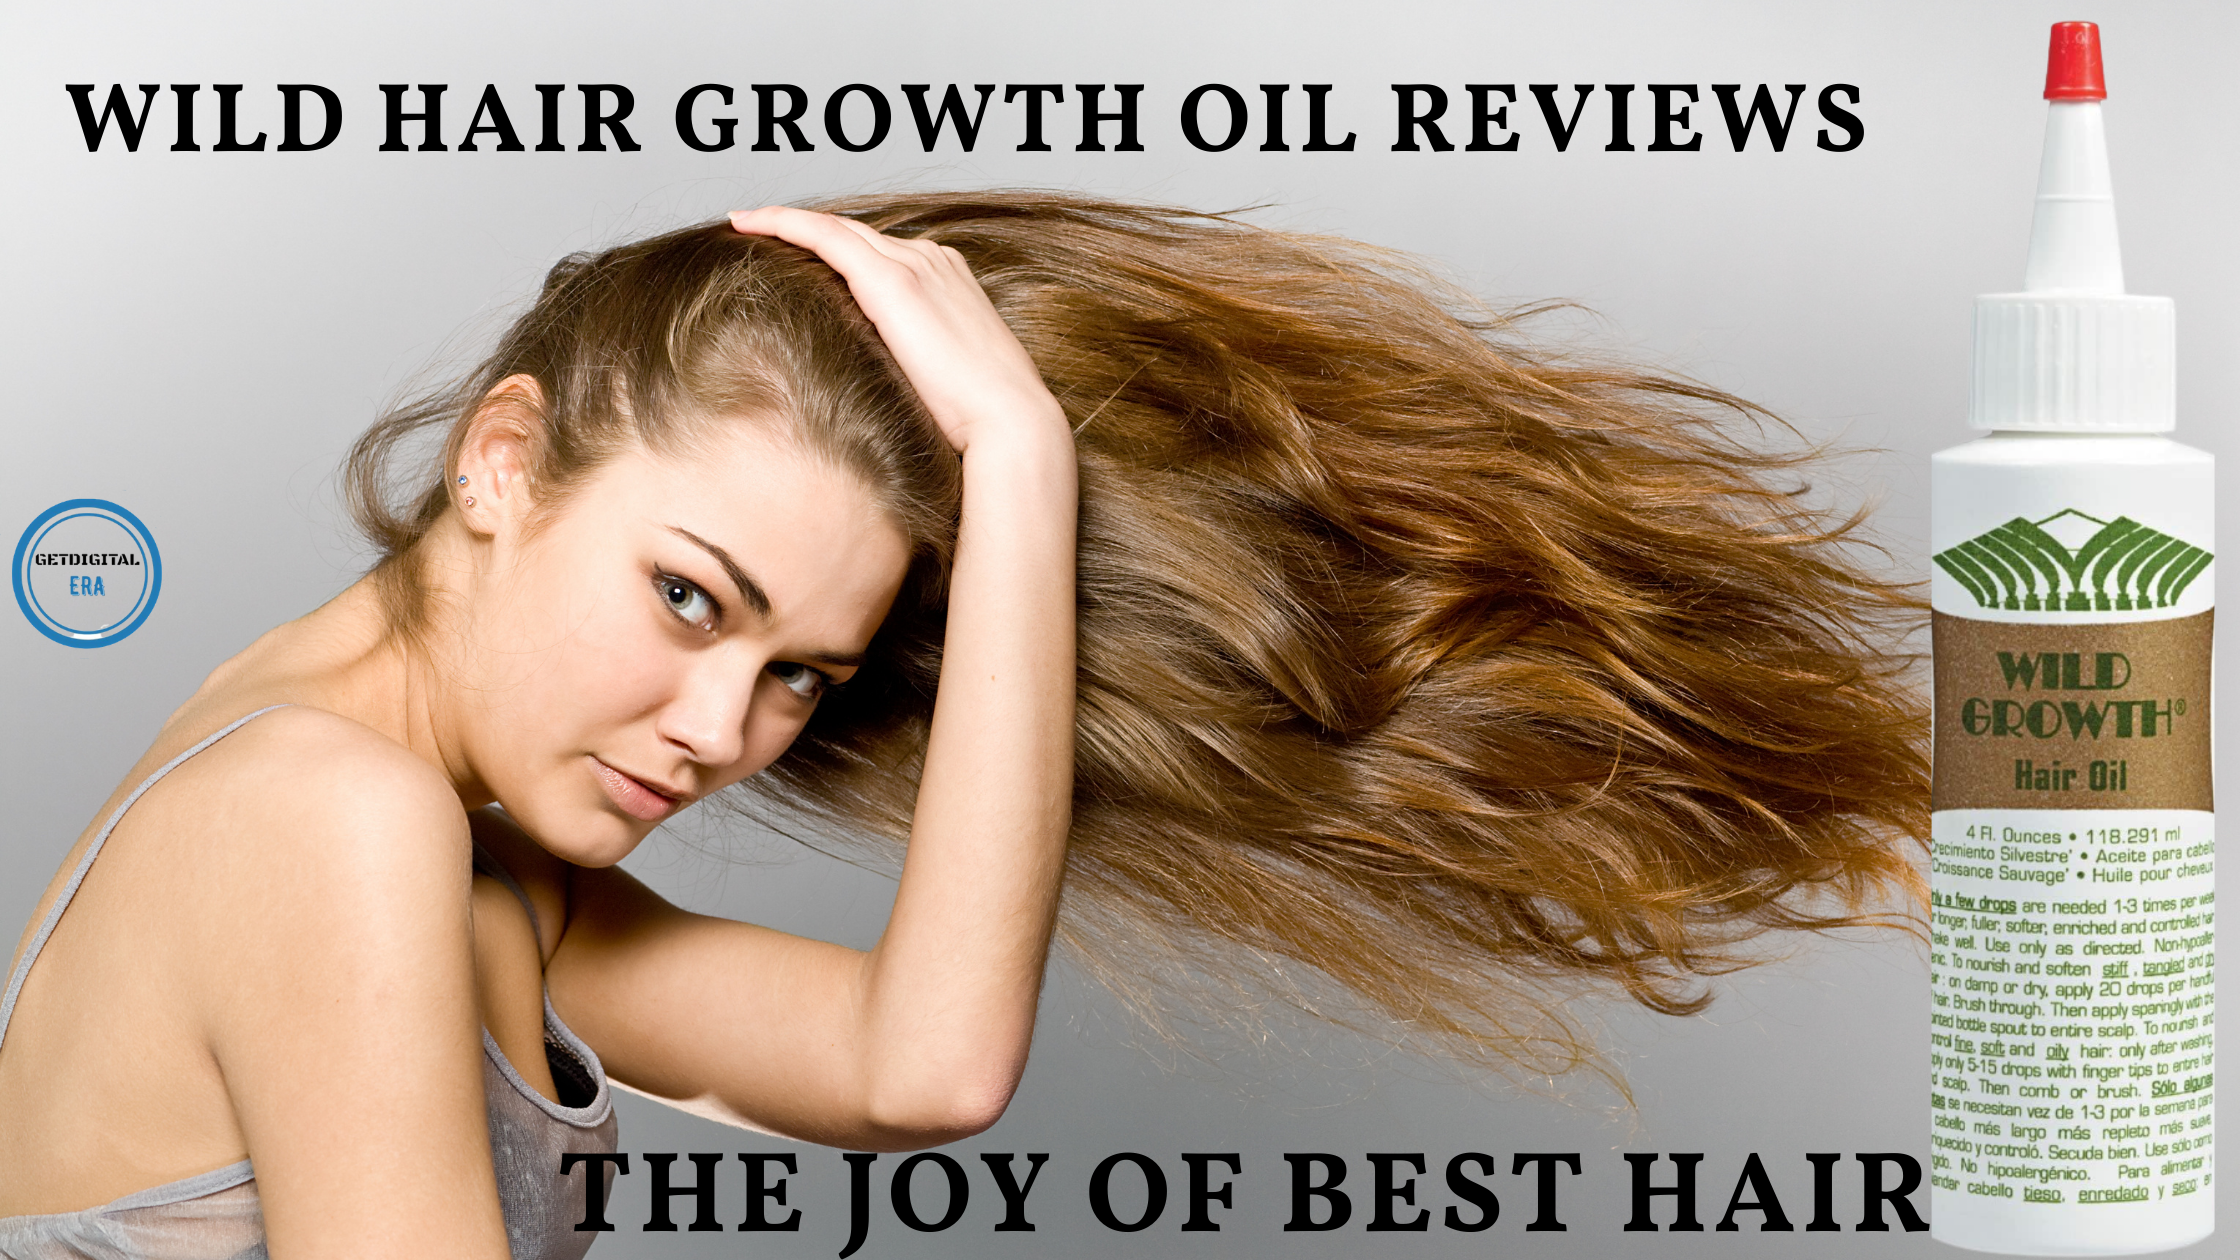 Wild Hair Growth Oil Reviews